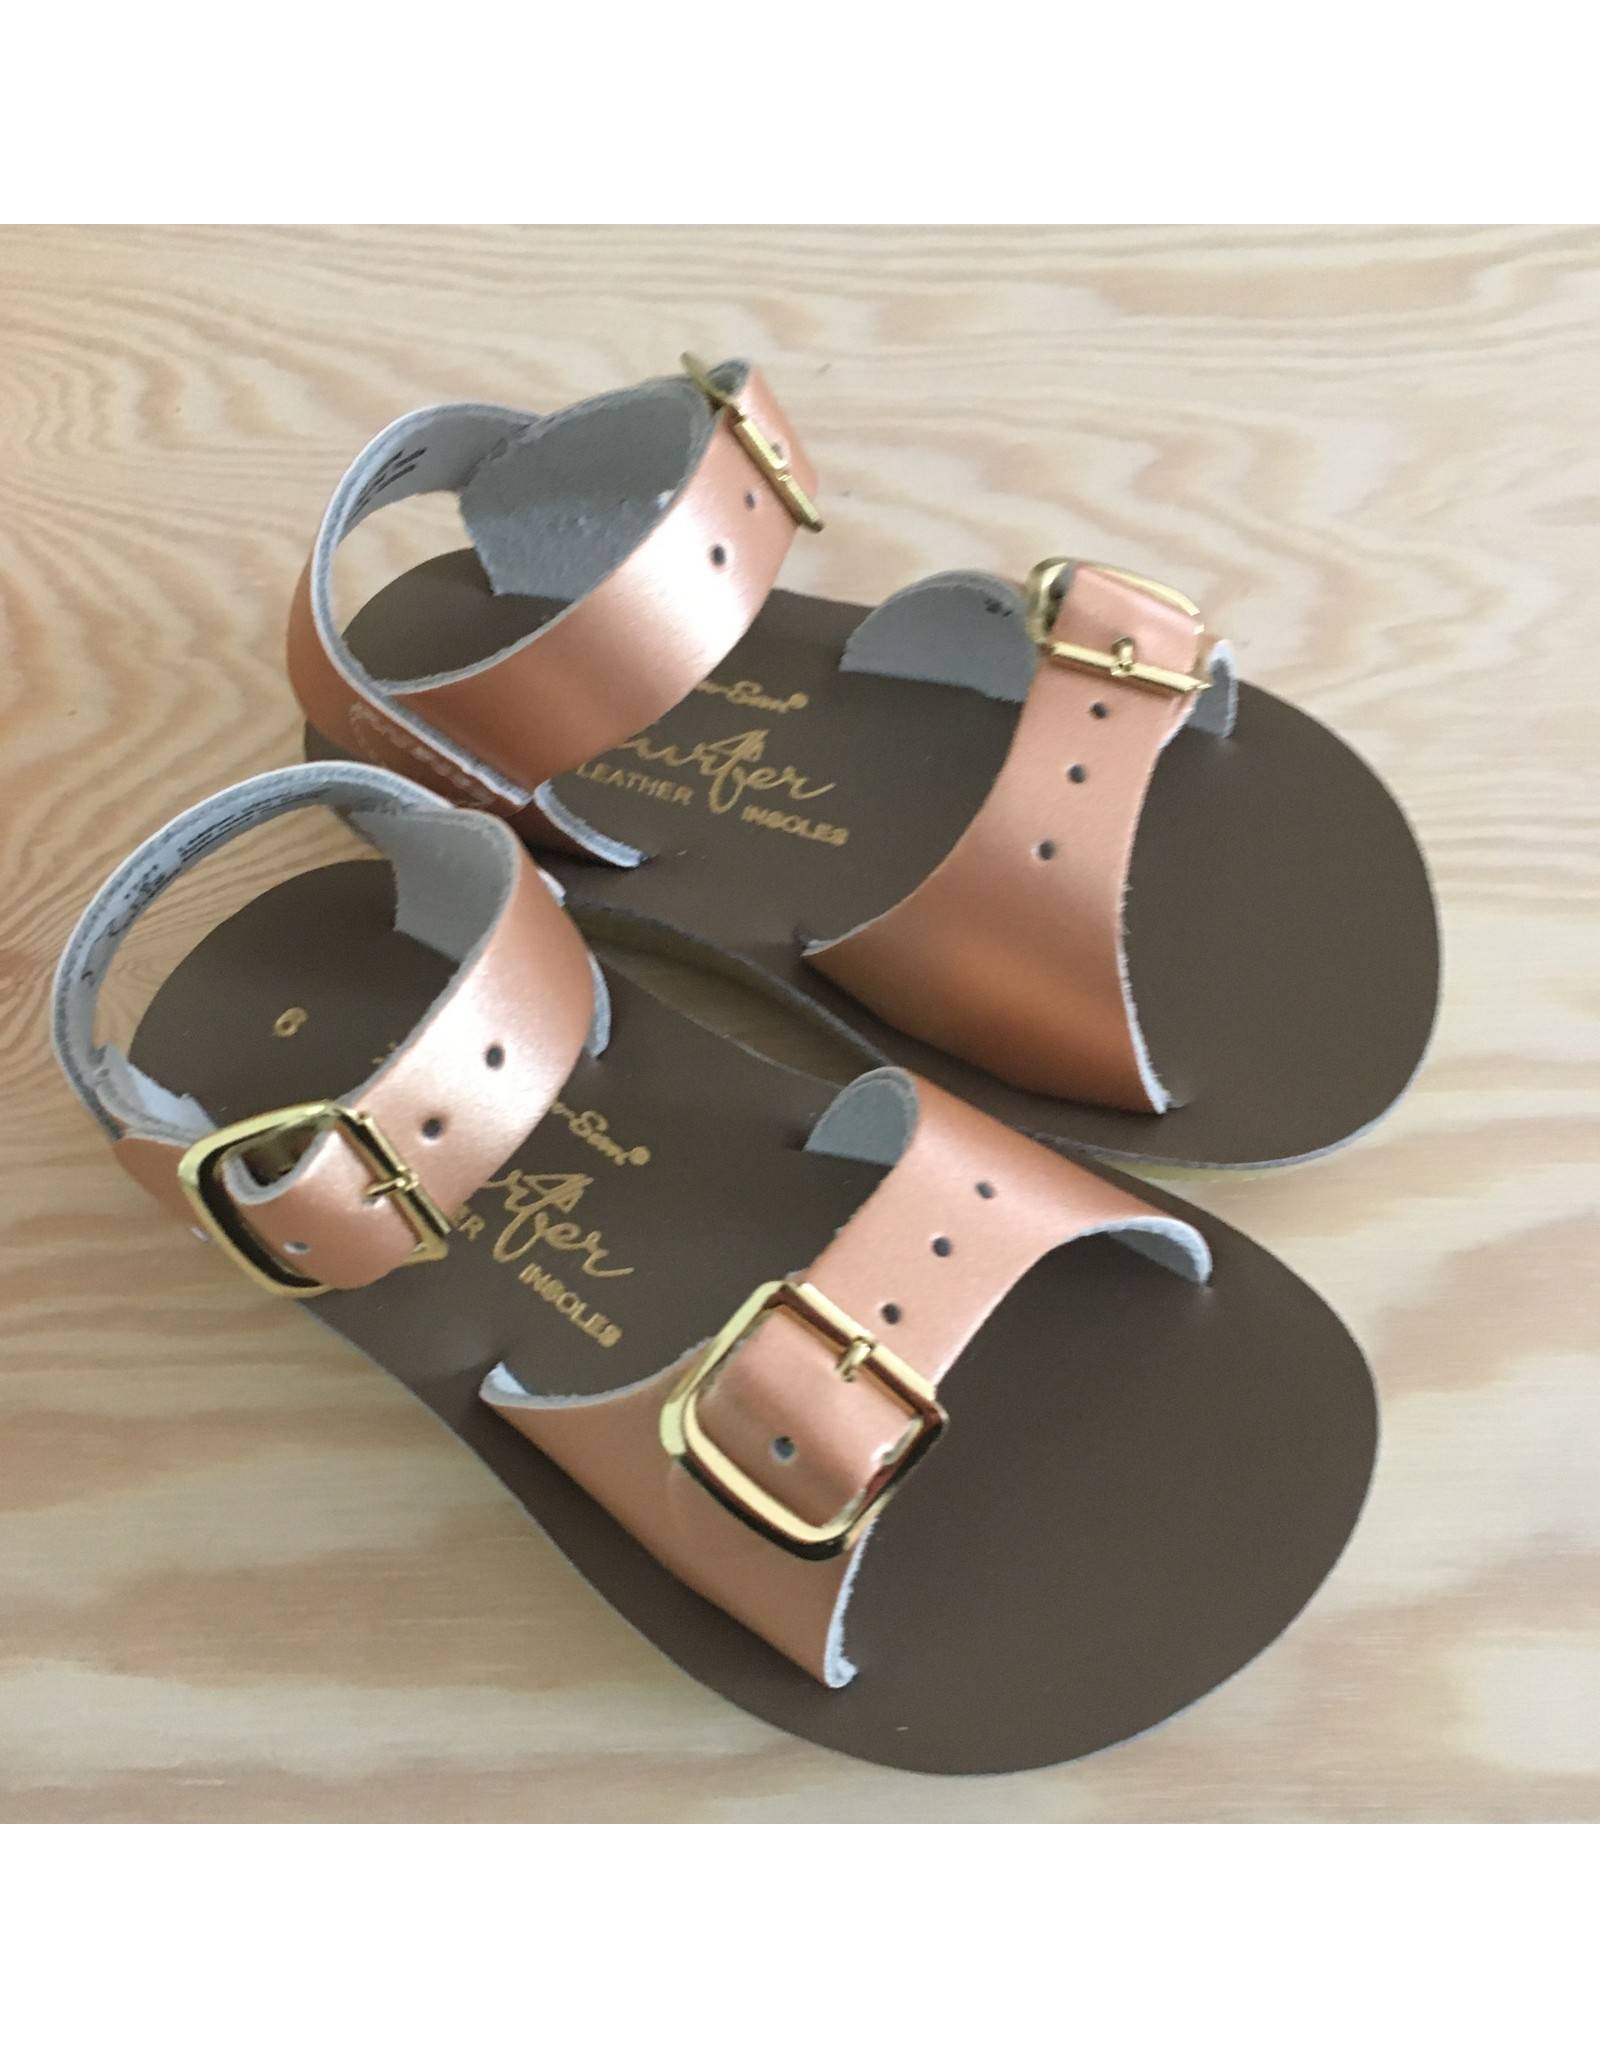 SALT-WATER SANDALS CLASSICS! SALT-WATER SANDALS SURFER ROSE GOLD